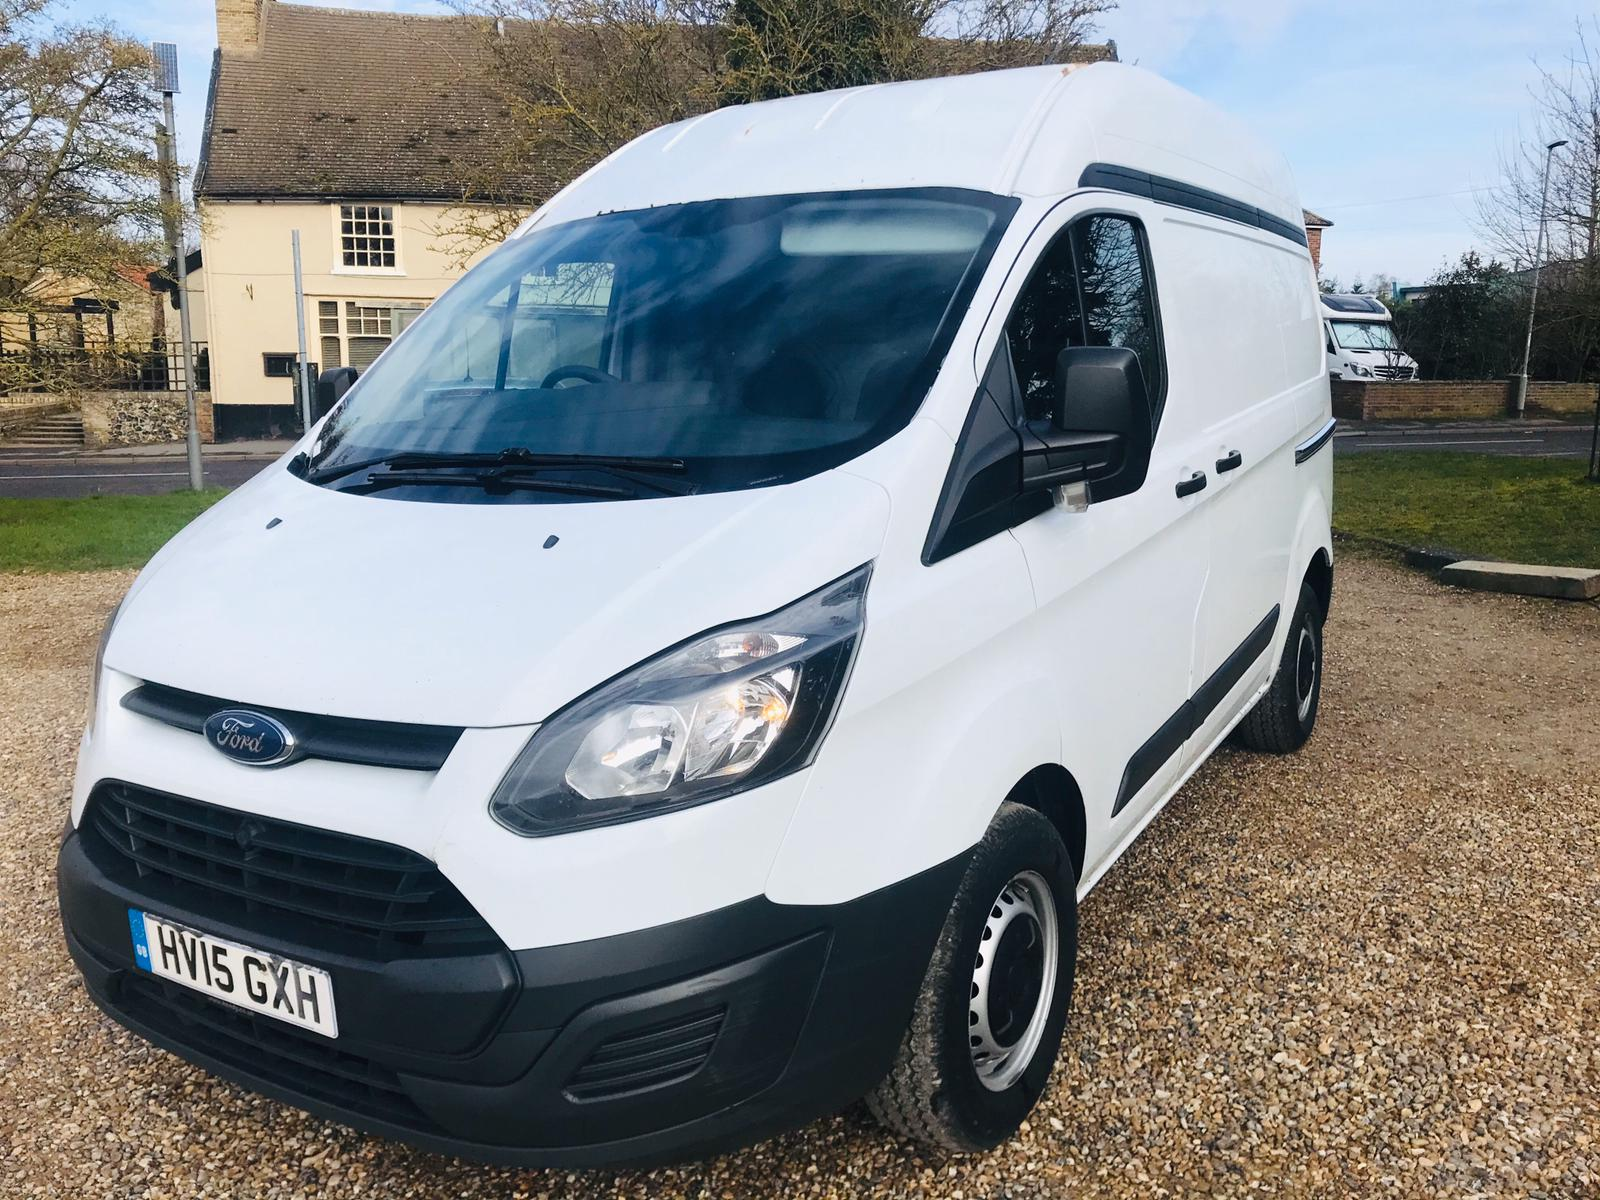 Ford Transit Custom 2.2 TDCI **HIGH ROOF** 2015 15 Reg - SAVE 20% NO VAT - Image 2 of 17